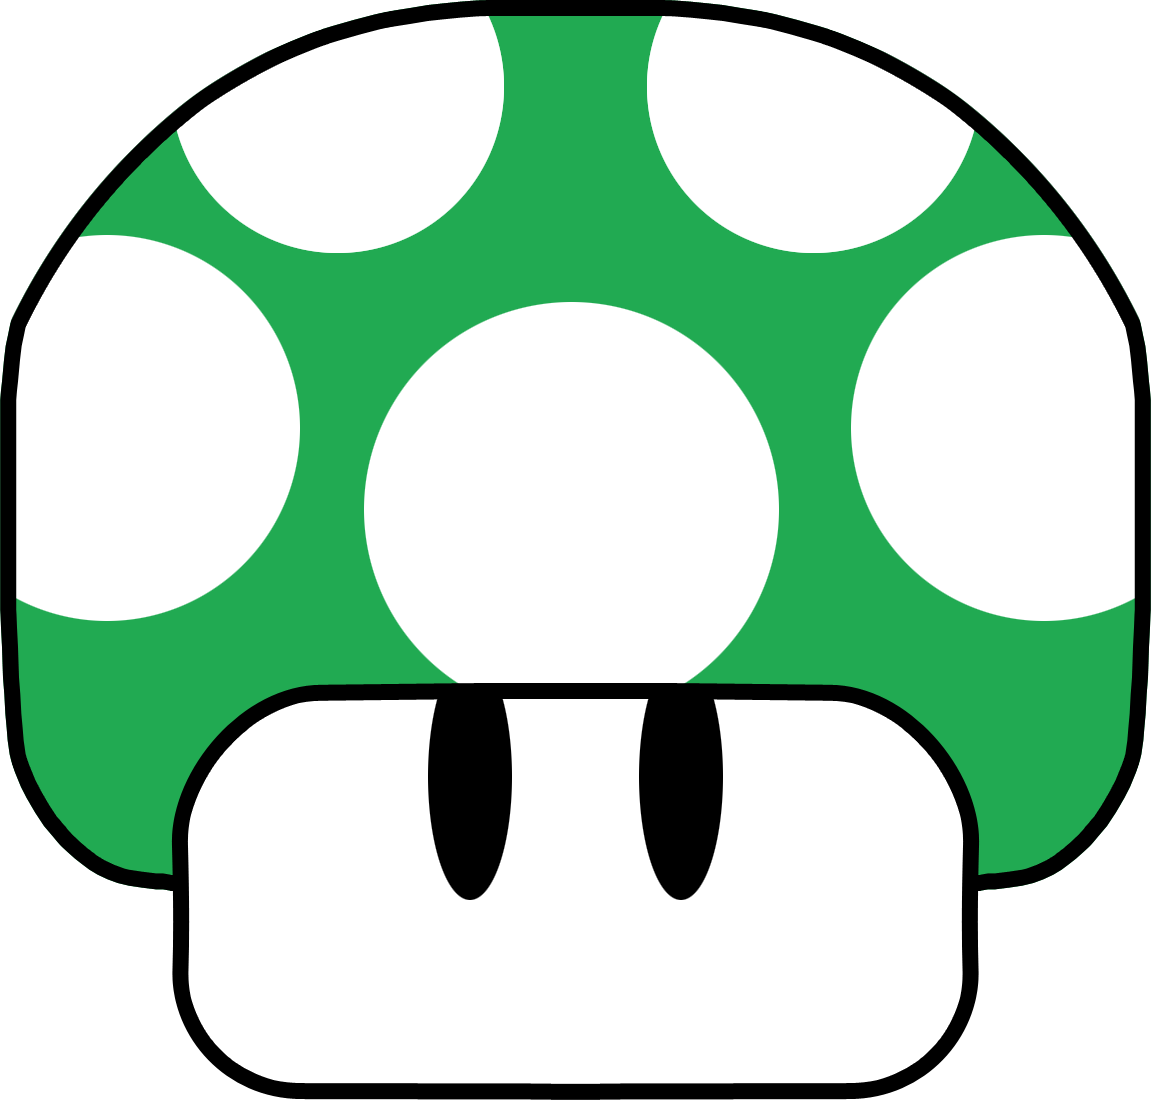 Mario 1 up png. Mushroom by blueamnesiac